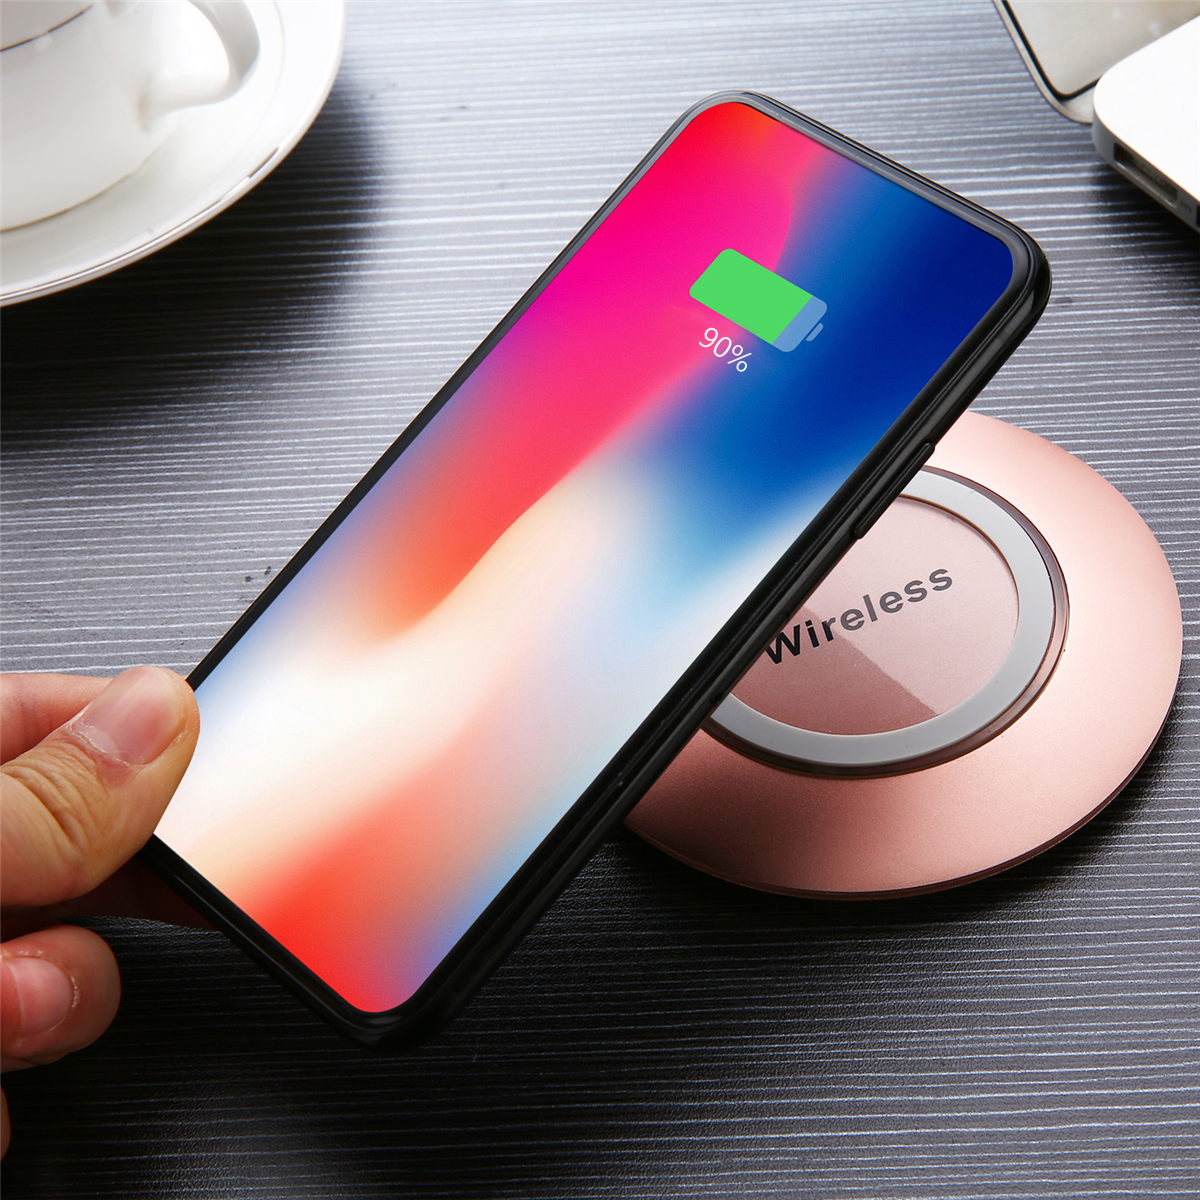 Crystal Metal LED Qi Wireless Fast Charger Pad for iPhone 8 X Plus S8 S9 Note 8